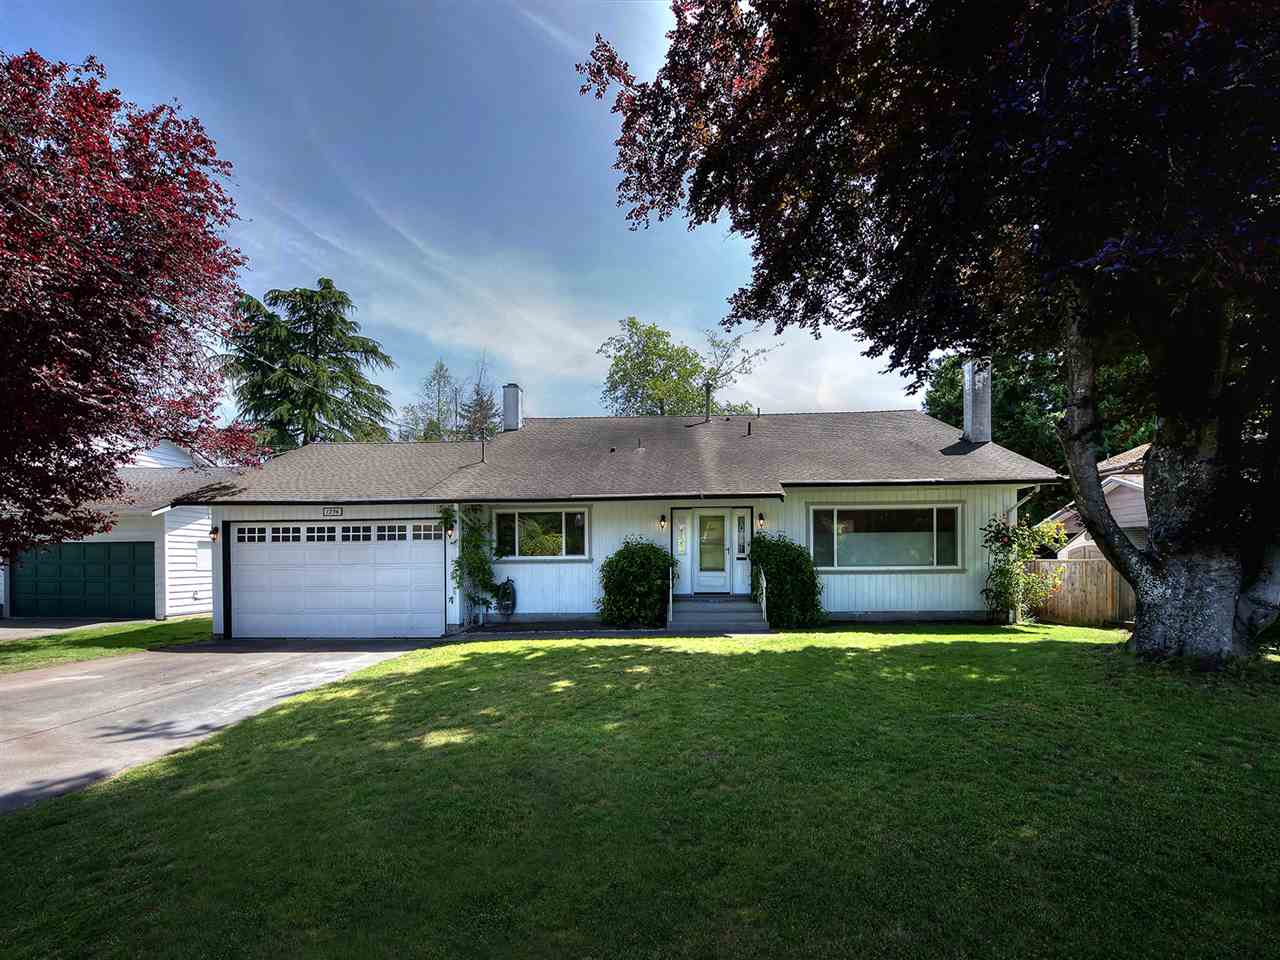 "Main Photo: 1236 52 Street in Delta: Cliff Drive House for sale in ""CLIFF DRIVE"" (Tsawwassen)  : MLS®# R2175156"